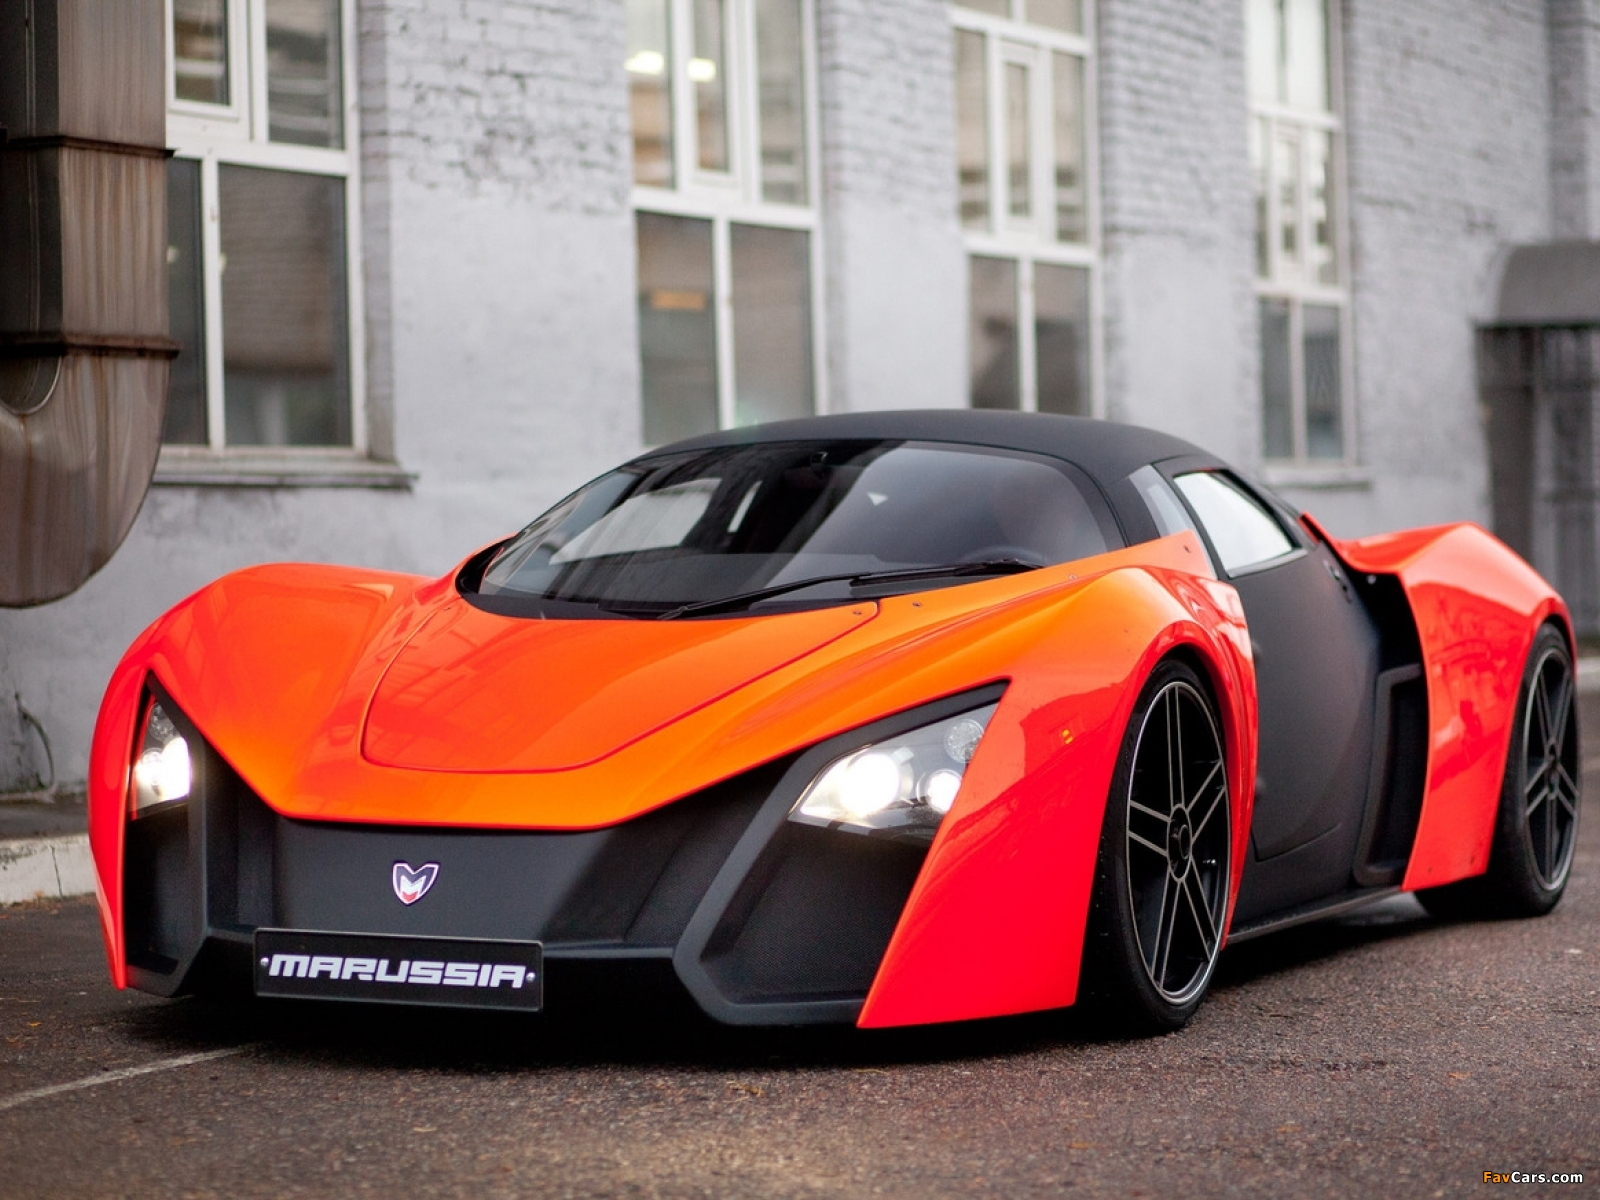 Marussia B2 (4114-000010-01) 2009–14 images (1600 x 1200)